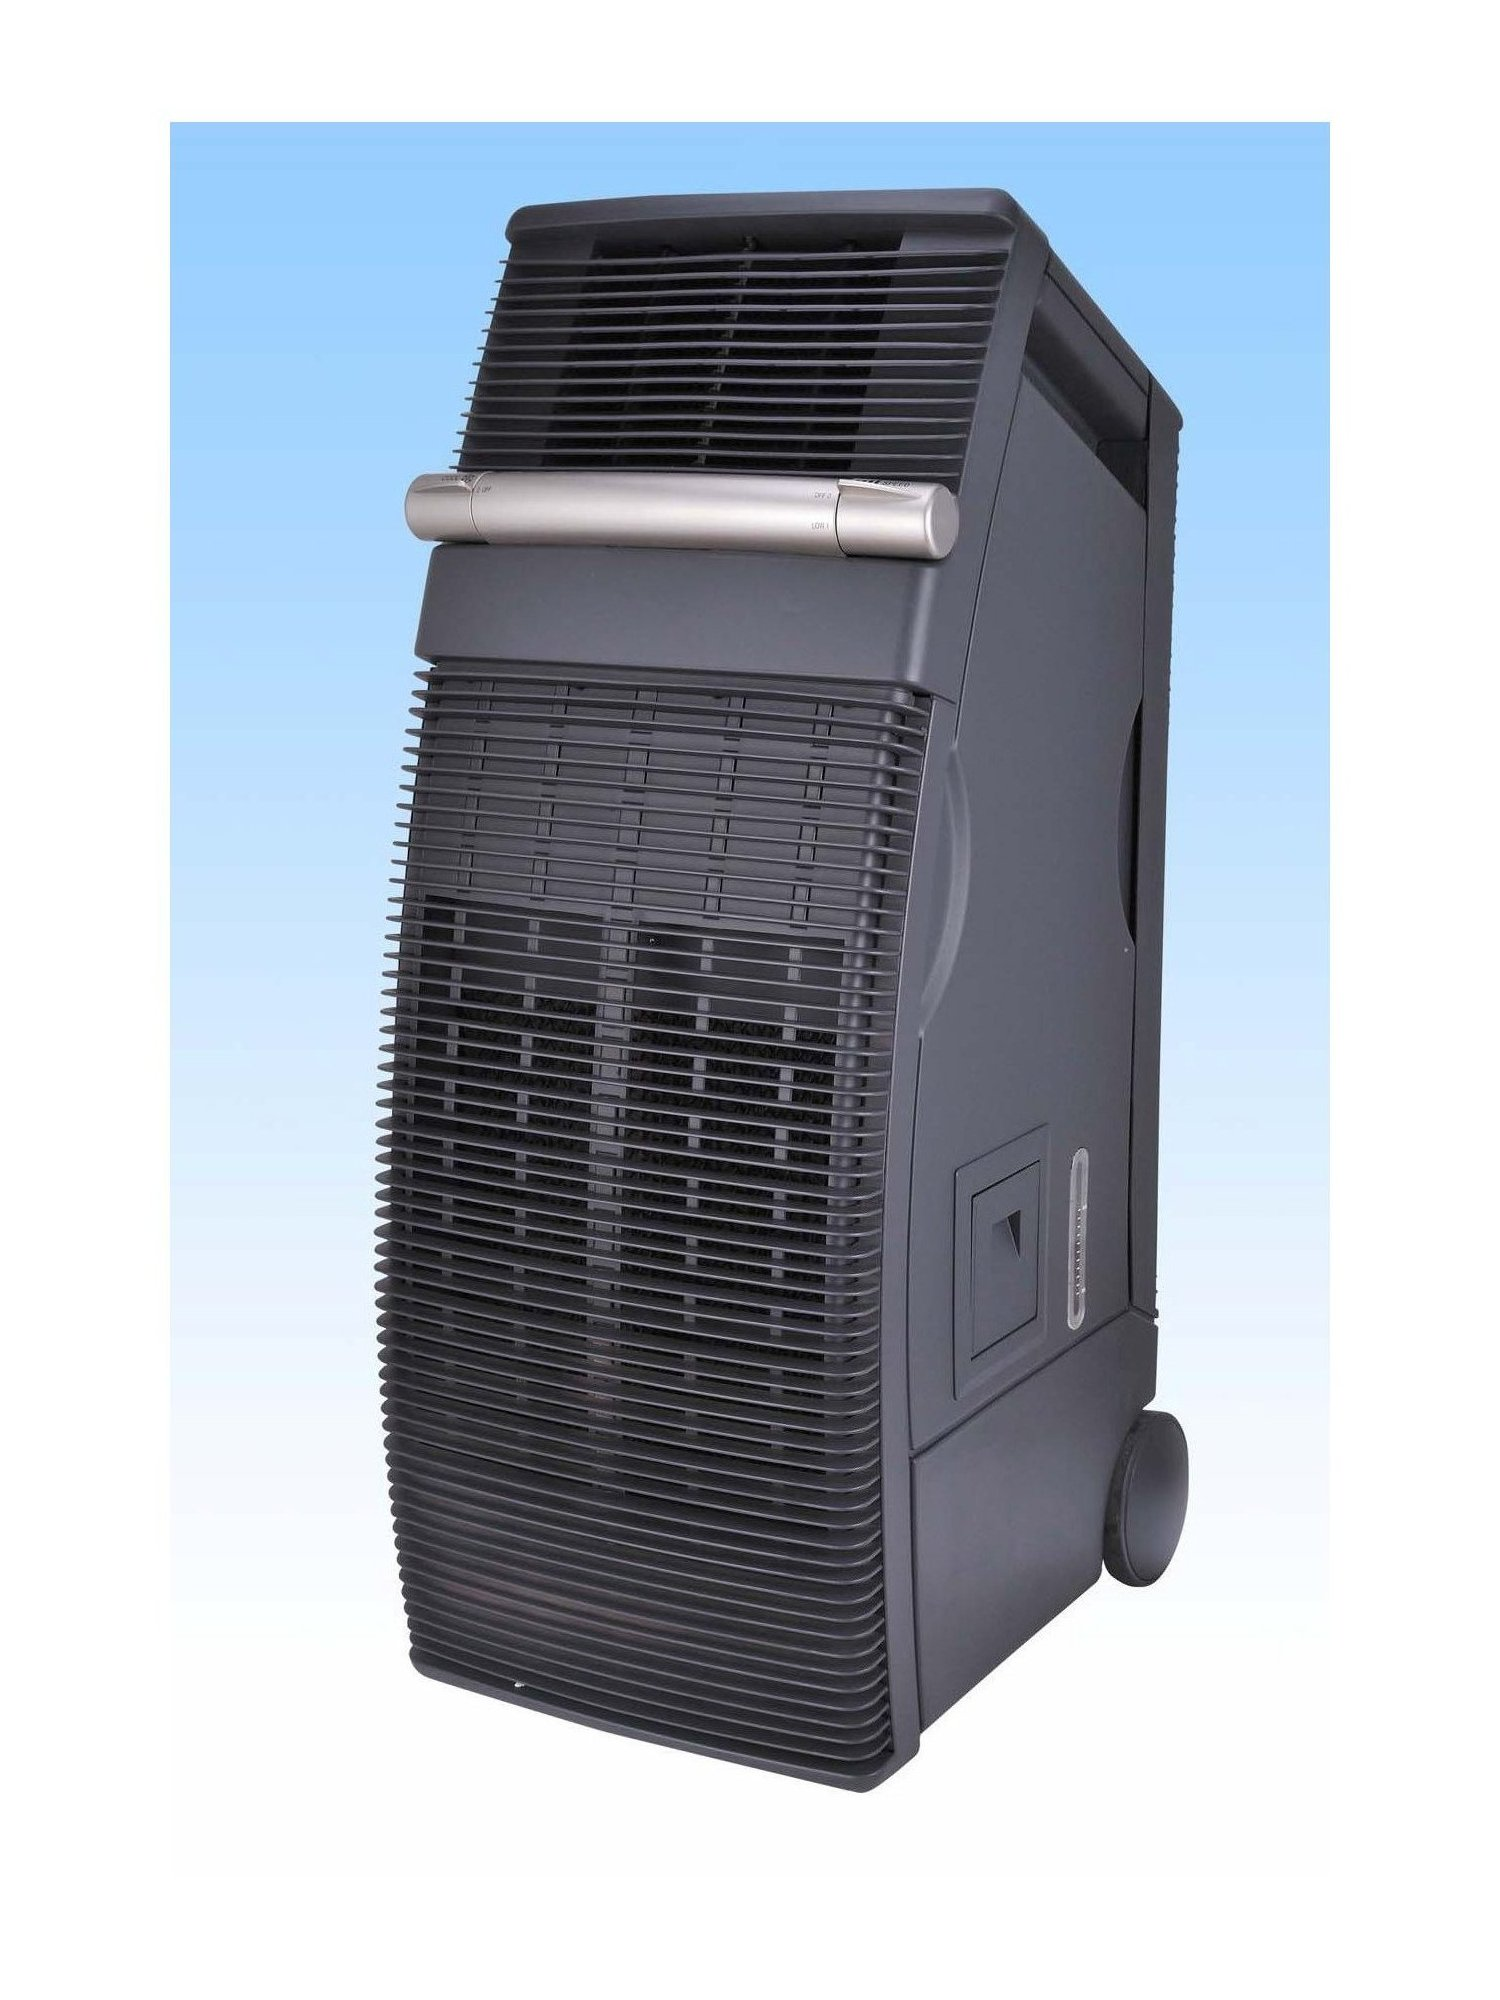 Rapid P10 Ipx4 Rated Outdoor Indoor Evaporative Air